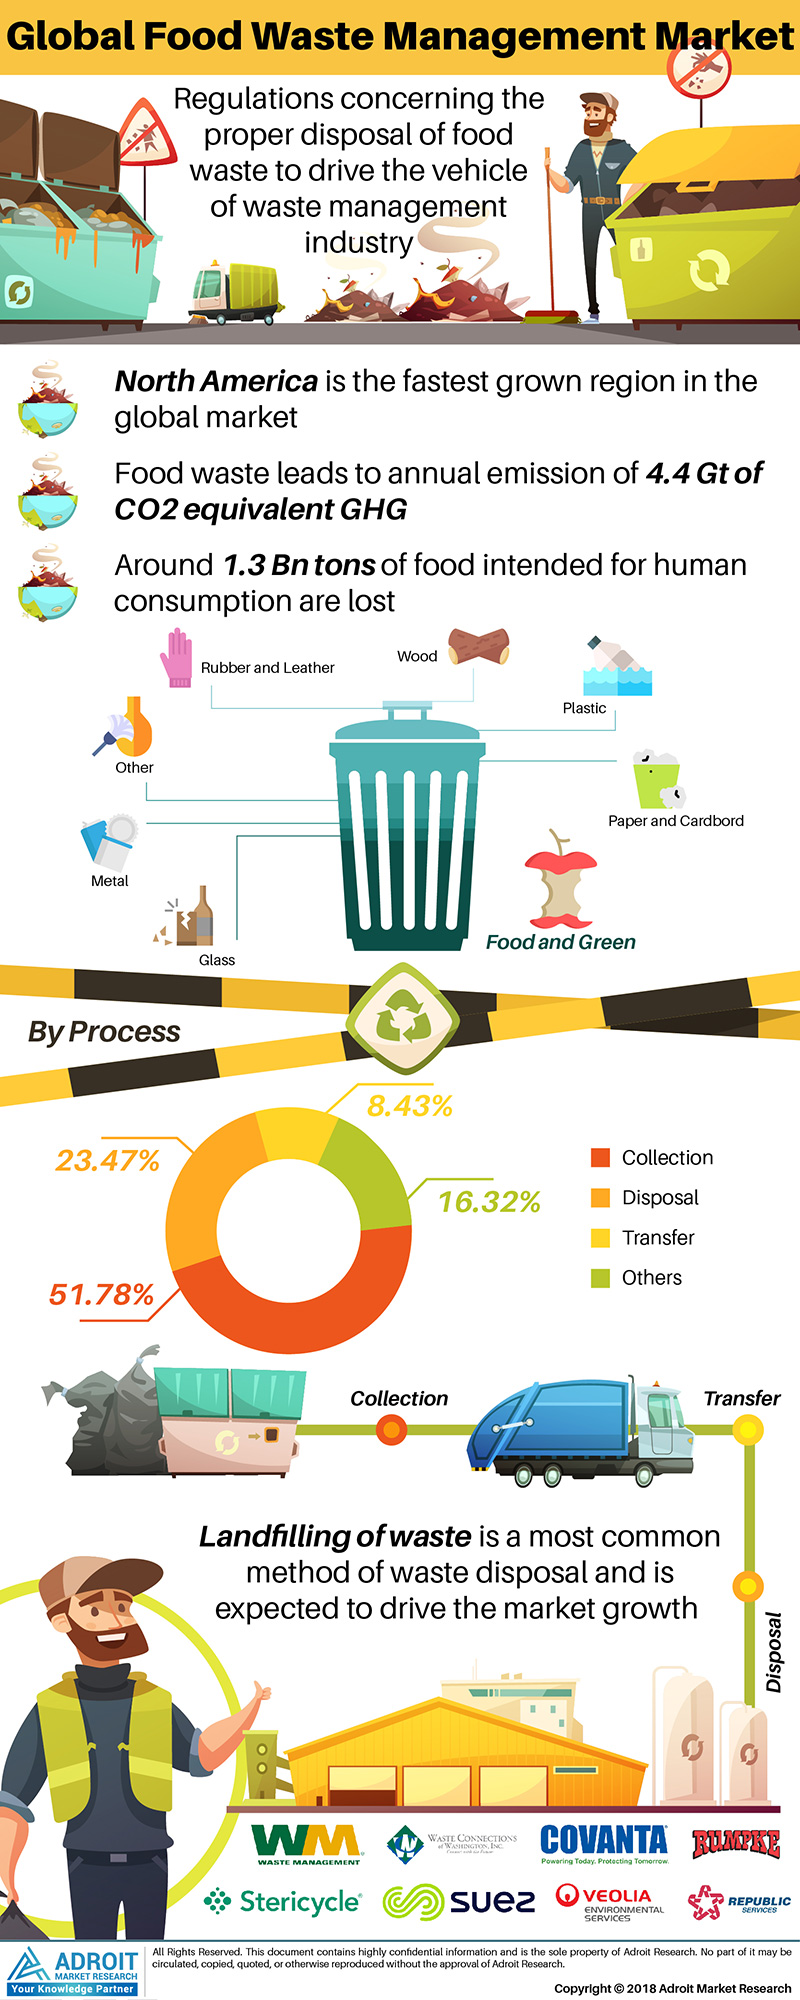 Global Food Waste Management Market Size 2017 By Product, Process, Region and Forecast 2019 to 2025